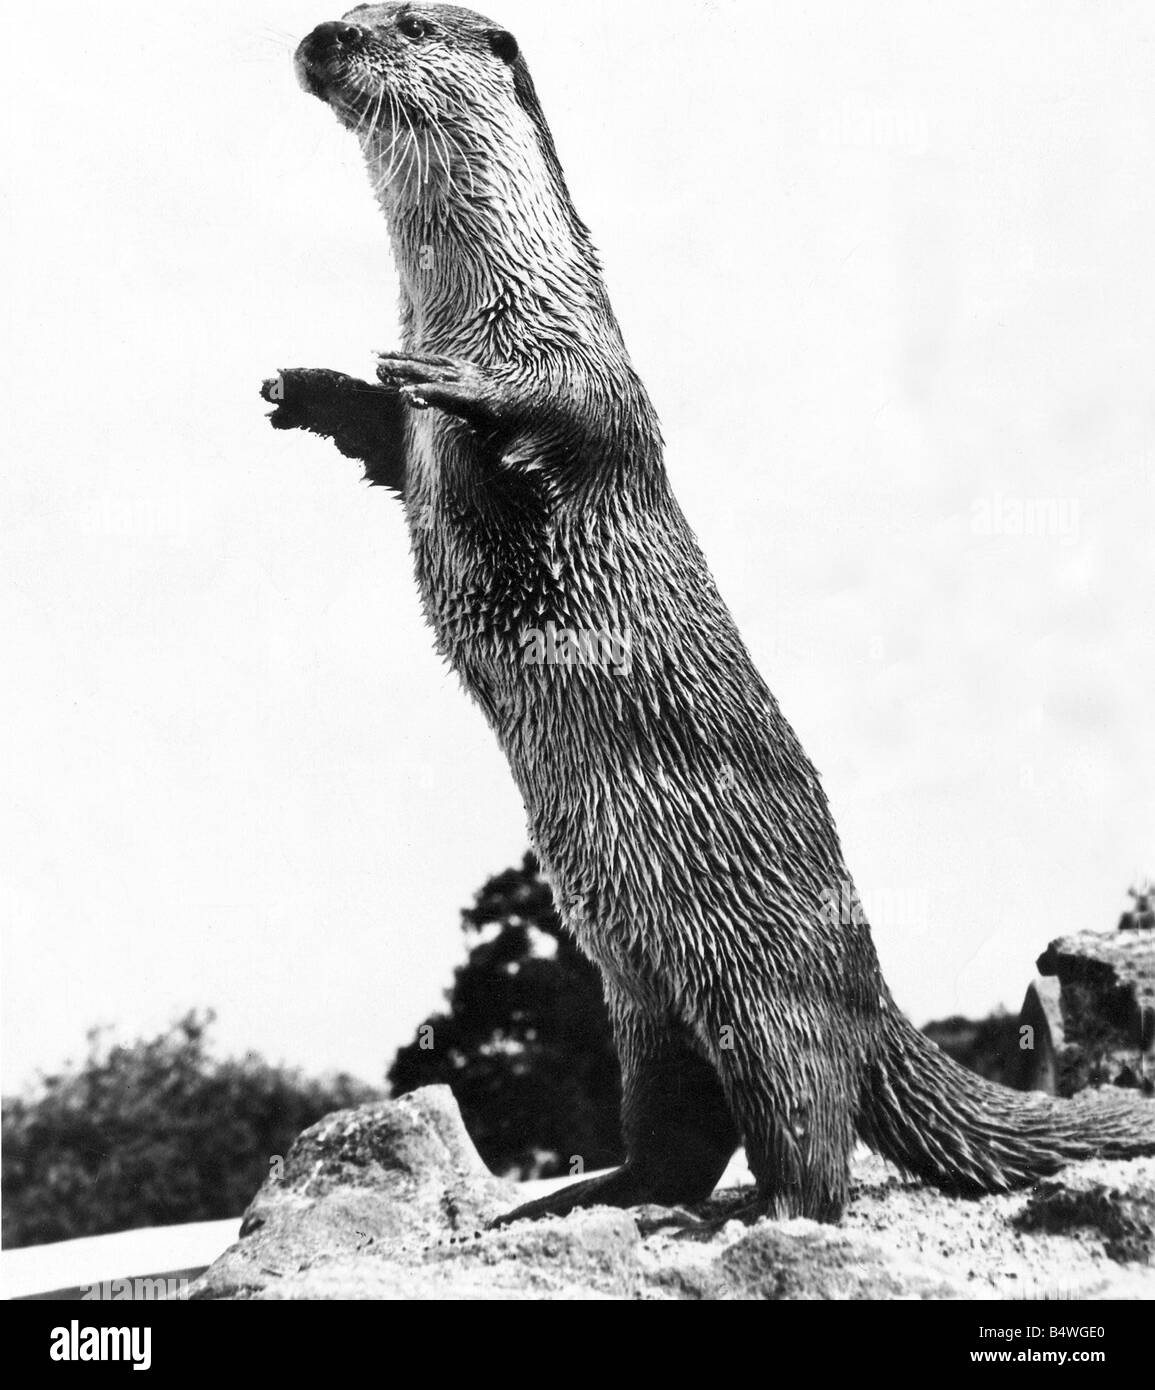 Otter Black and White Stock Photos & Images - Page 3 - Alamy